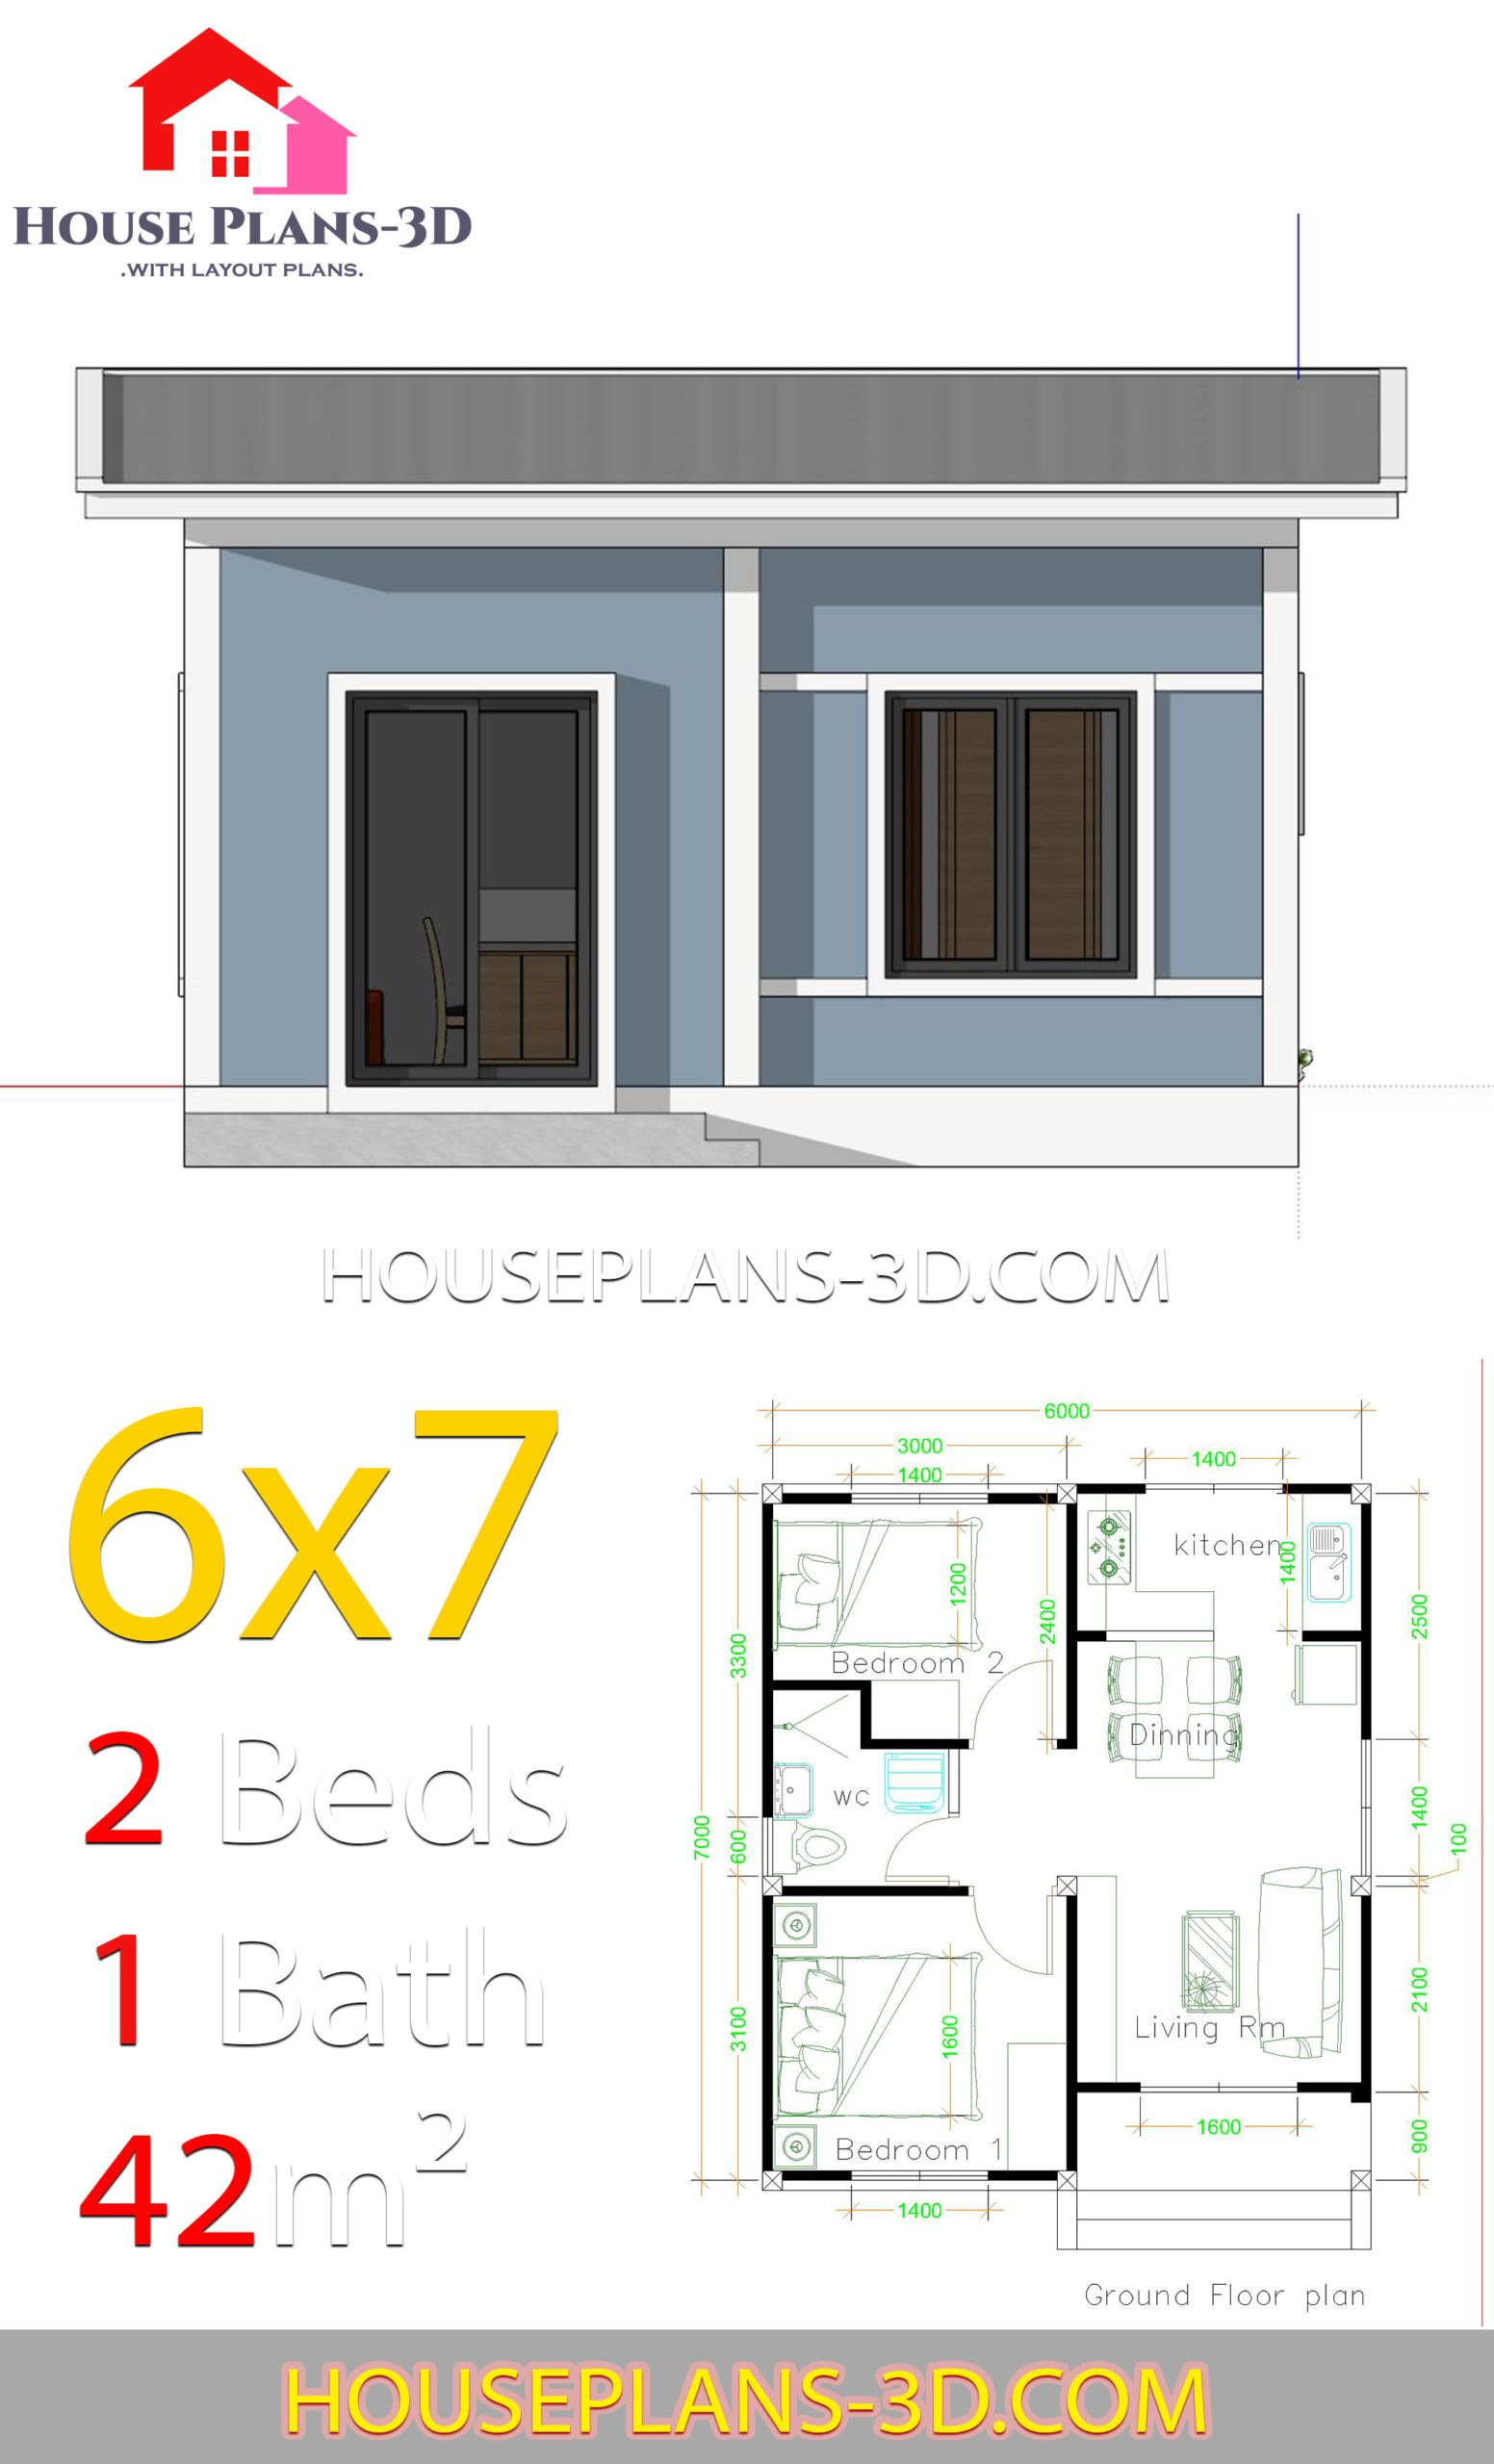 Sample Of Simple House Design 2020 In 2020 House Plans Small House Plans Simple House Plans